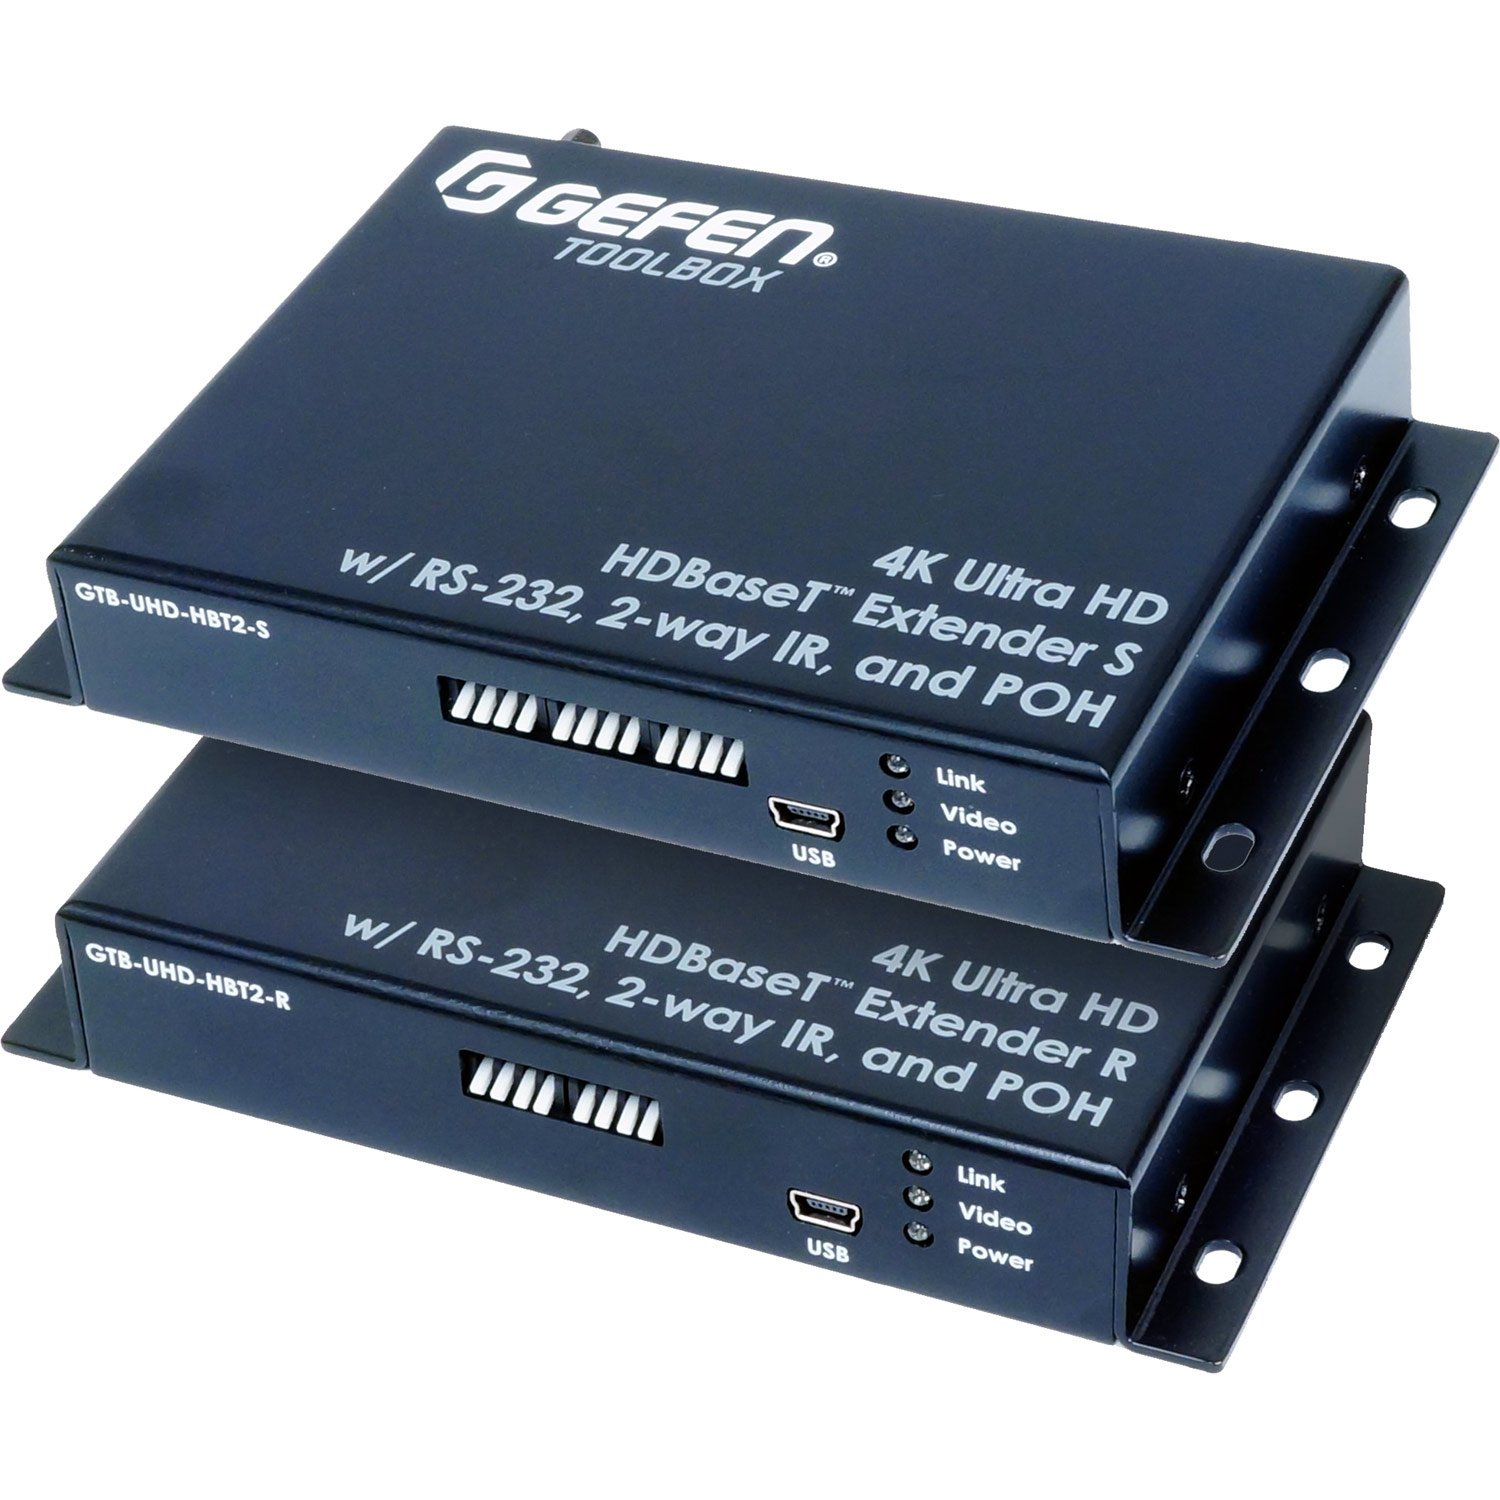 Gefen CI GTB-UHD-HBT2 4K Ultra DBase Extender with RS-232, 2-Way IR, and Pooh